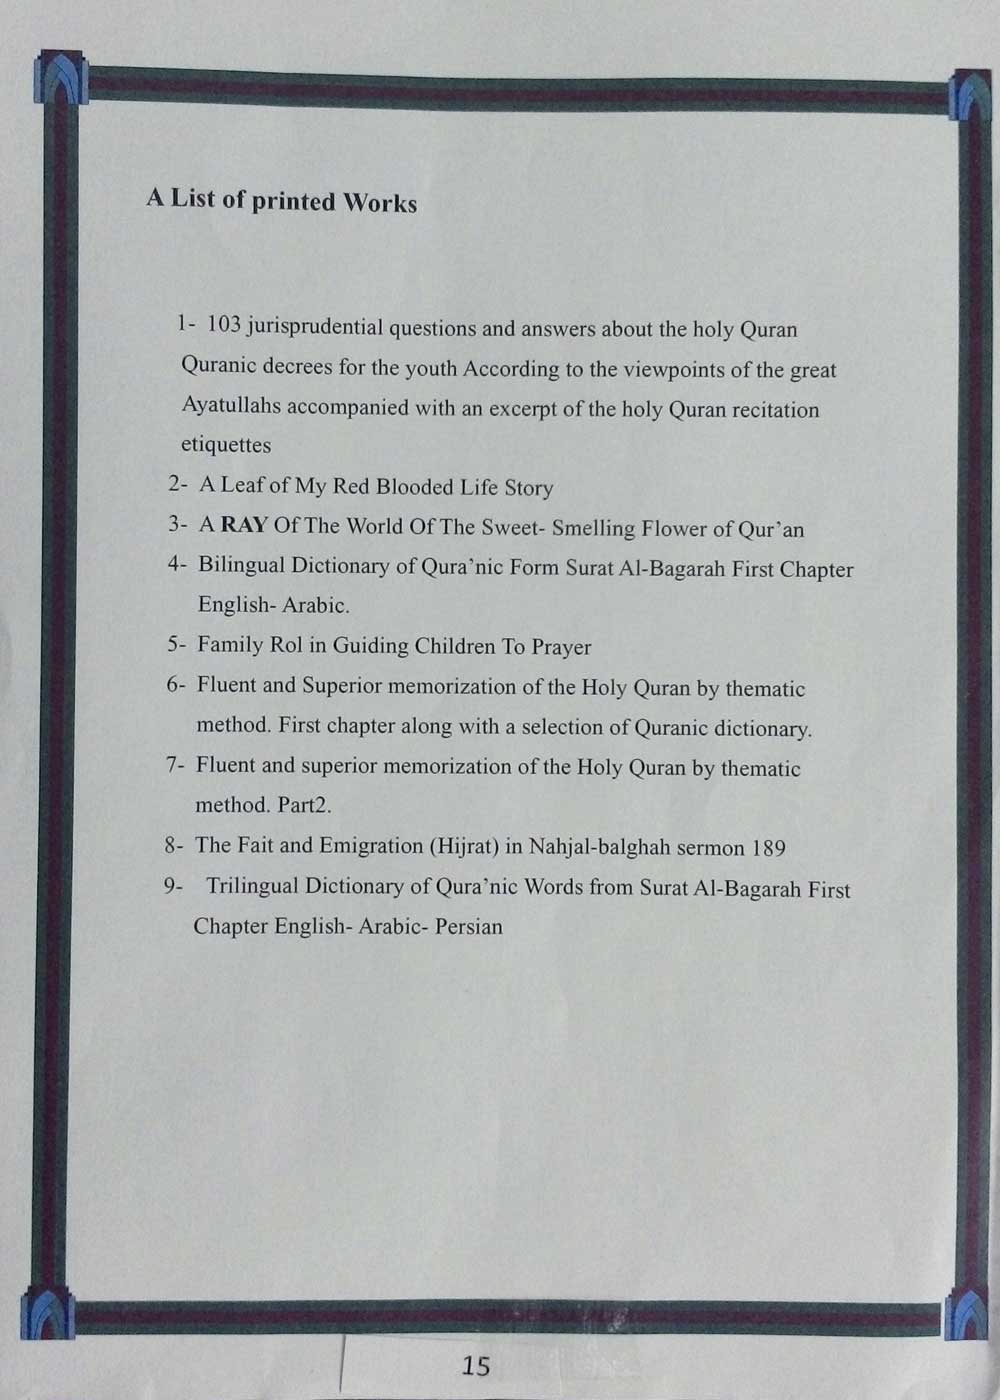 A List of printed Works